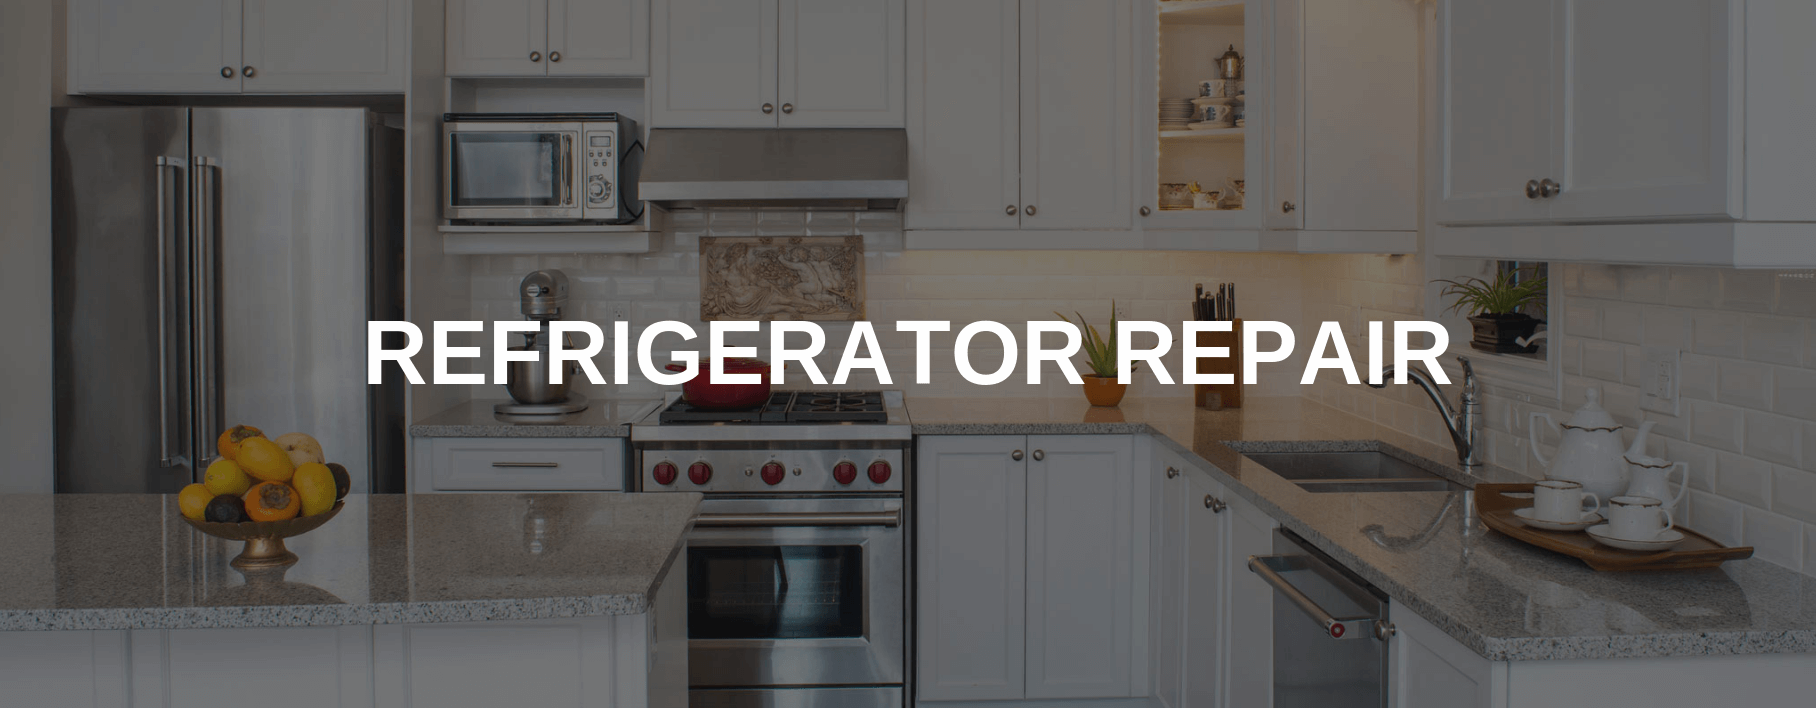 refrigerator repair city st